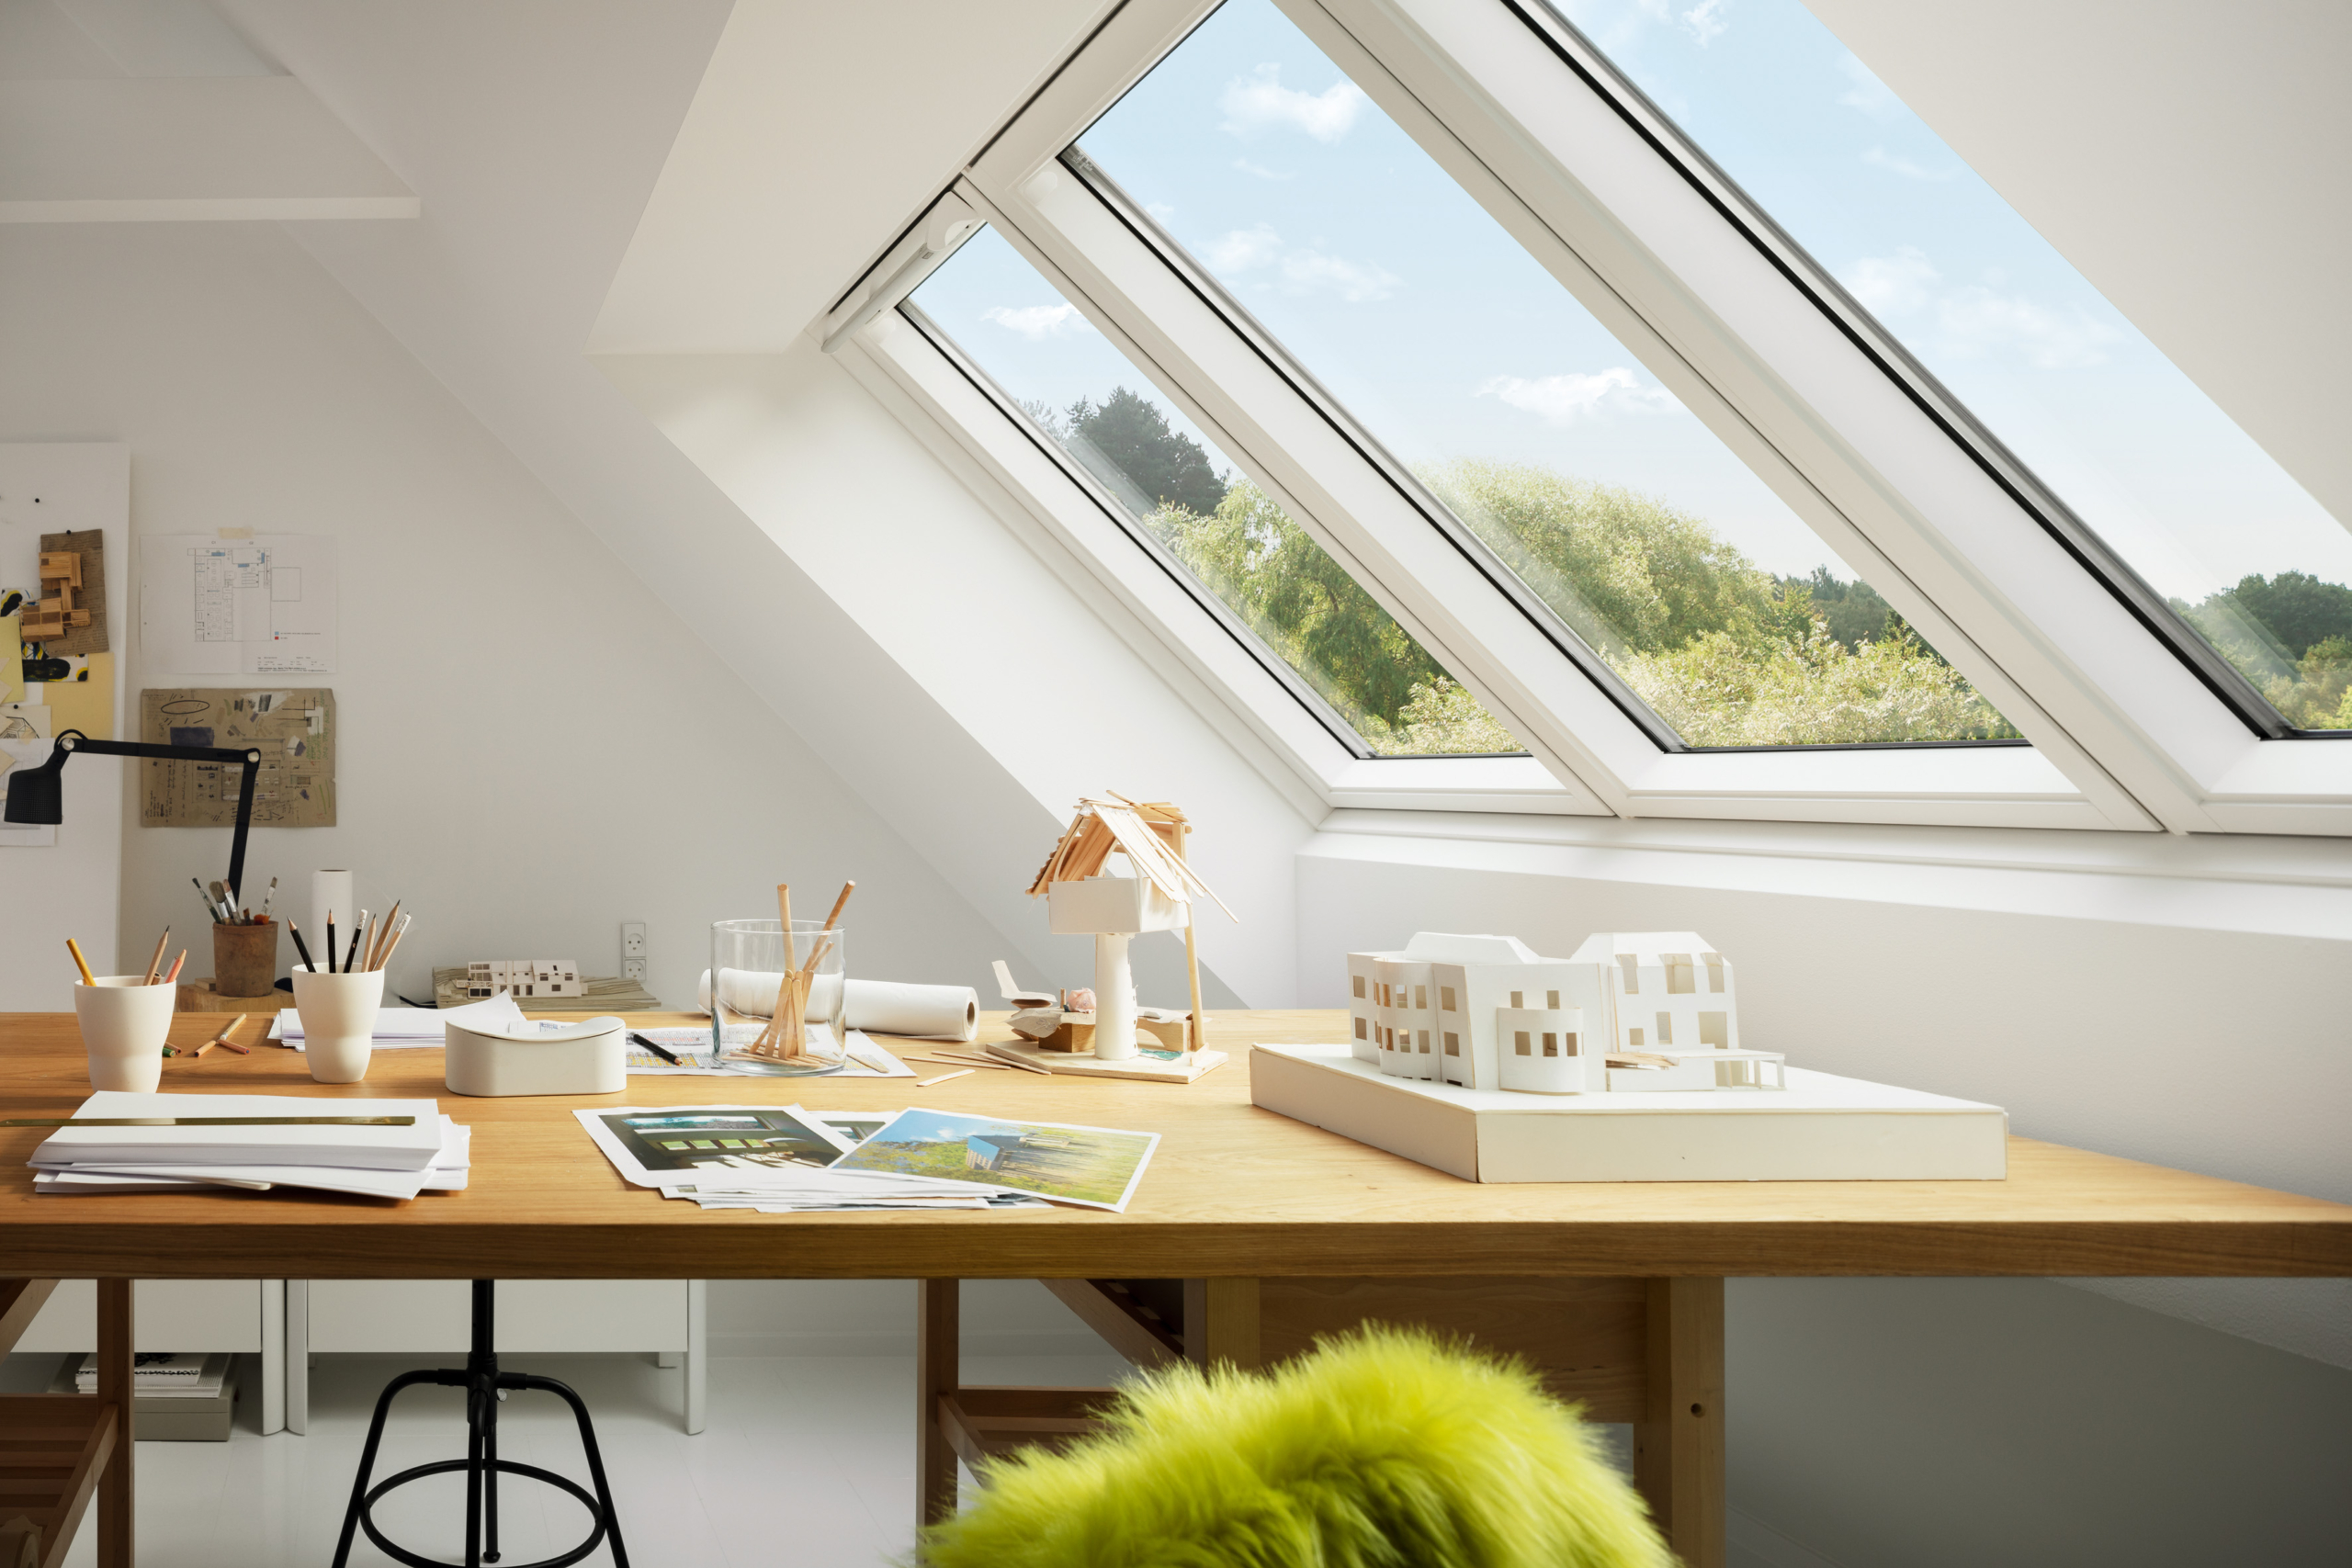 Bild 2 - Studio/Klappfenster by Velux